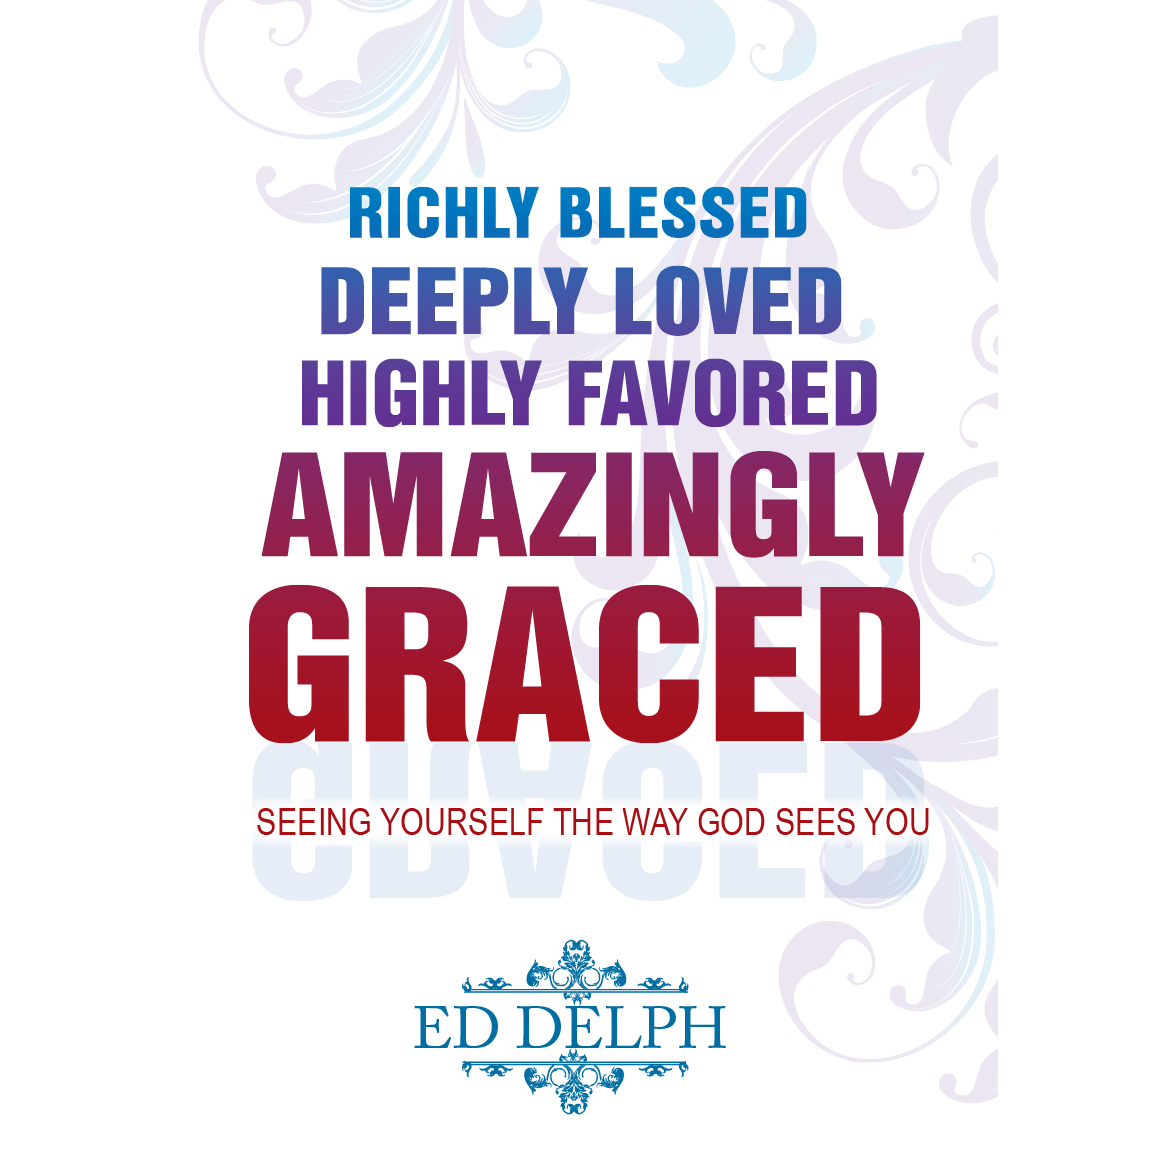 Richly Blessed, Deeply Loved, Highly Favored, Amazingly Graced